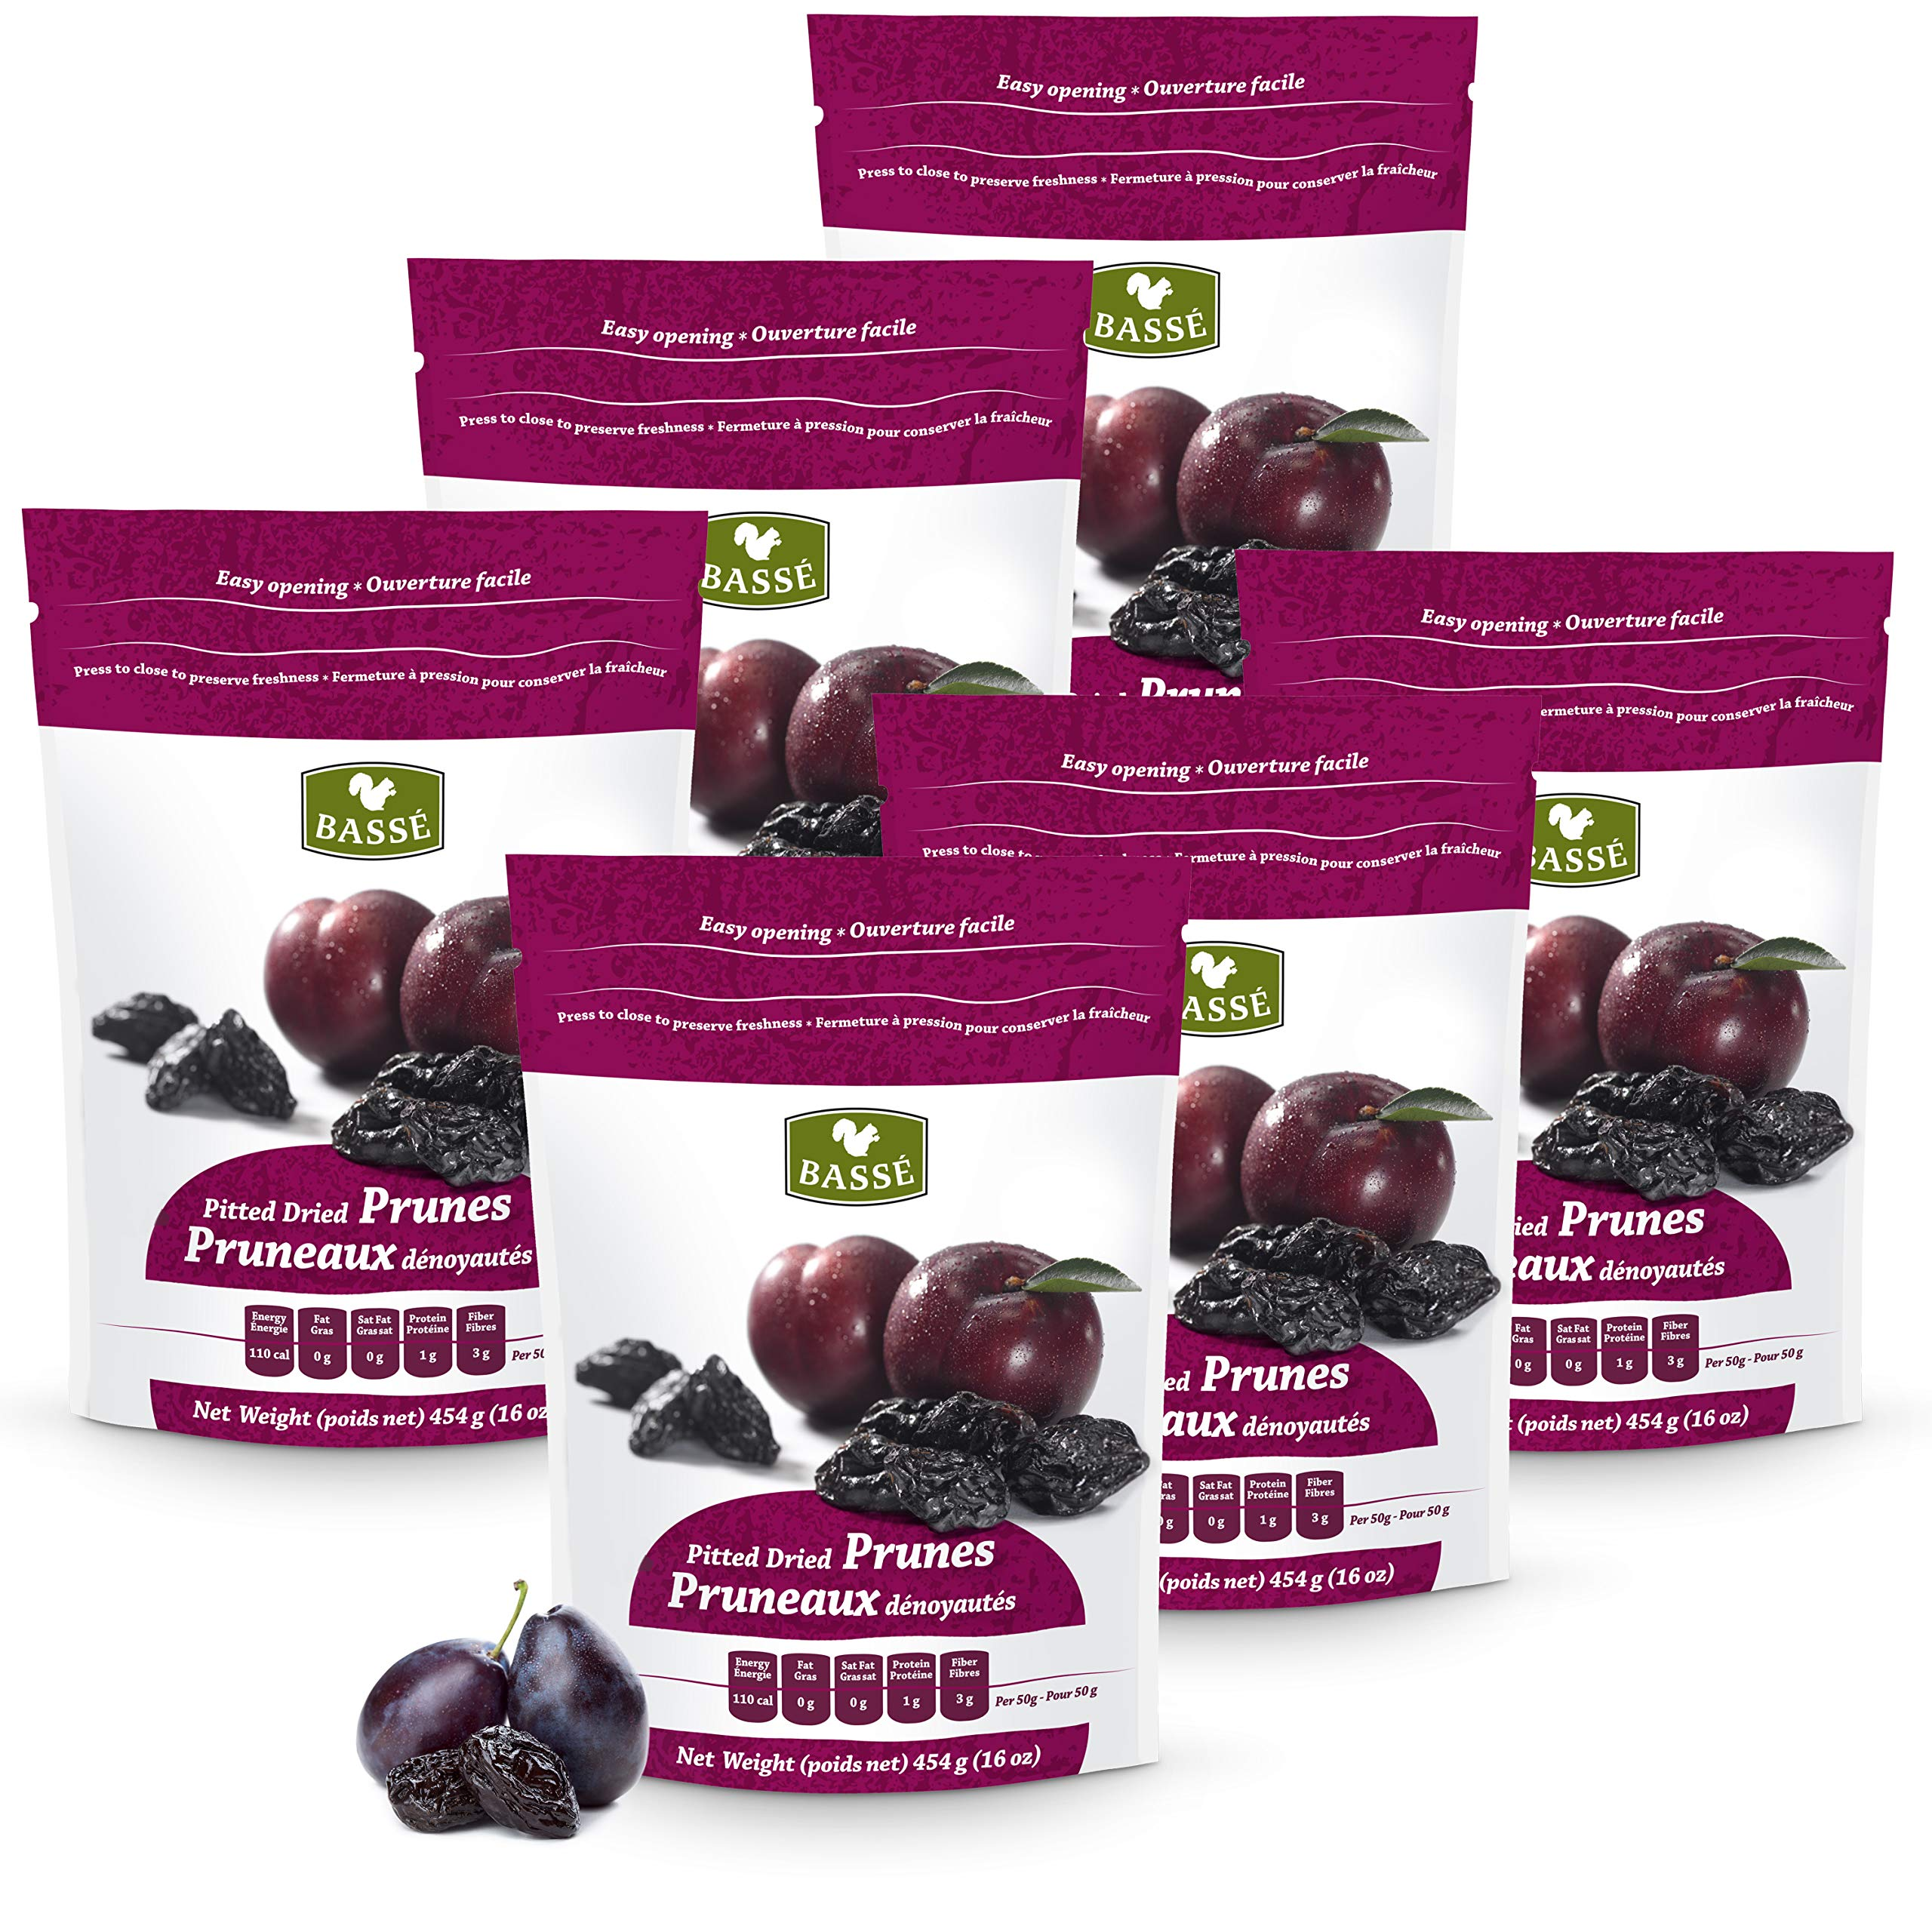 Basse Dried Pitted Prunes, USA Grown Dried Plums 6 Bags (1 Pound each) by Basse Nuts